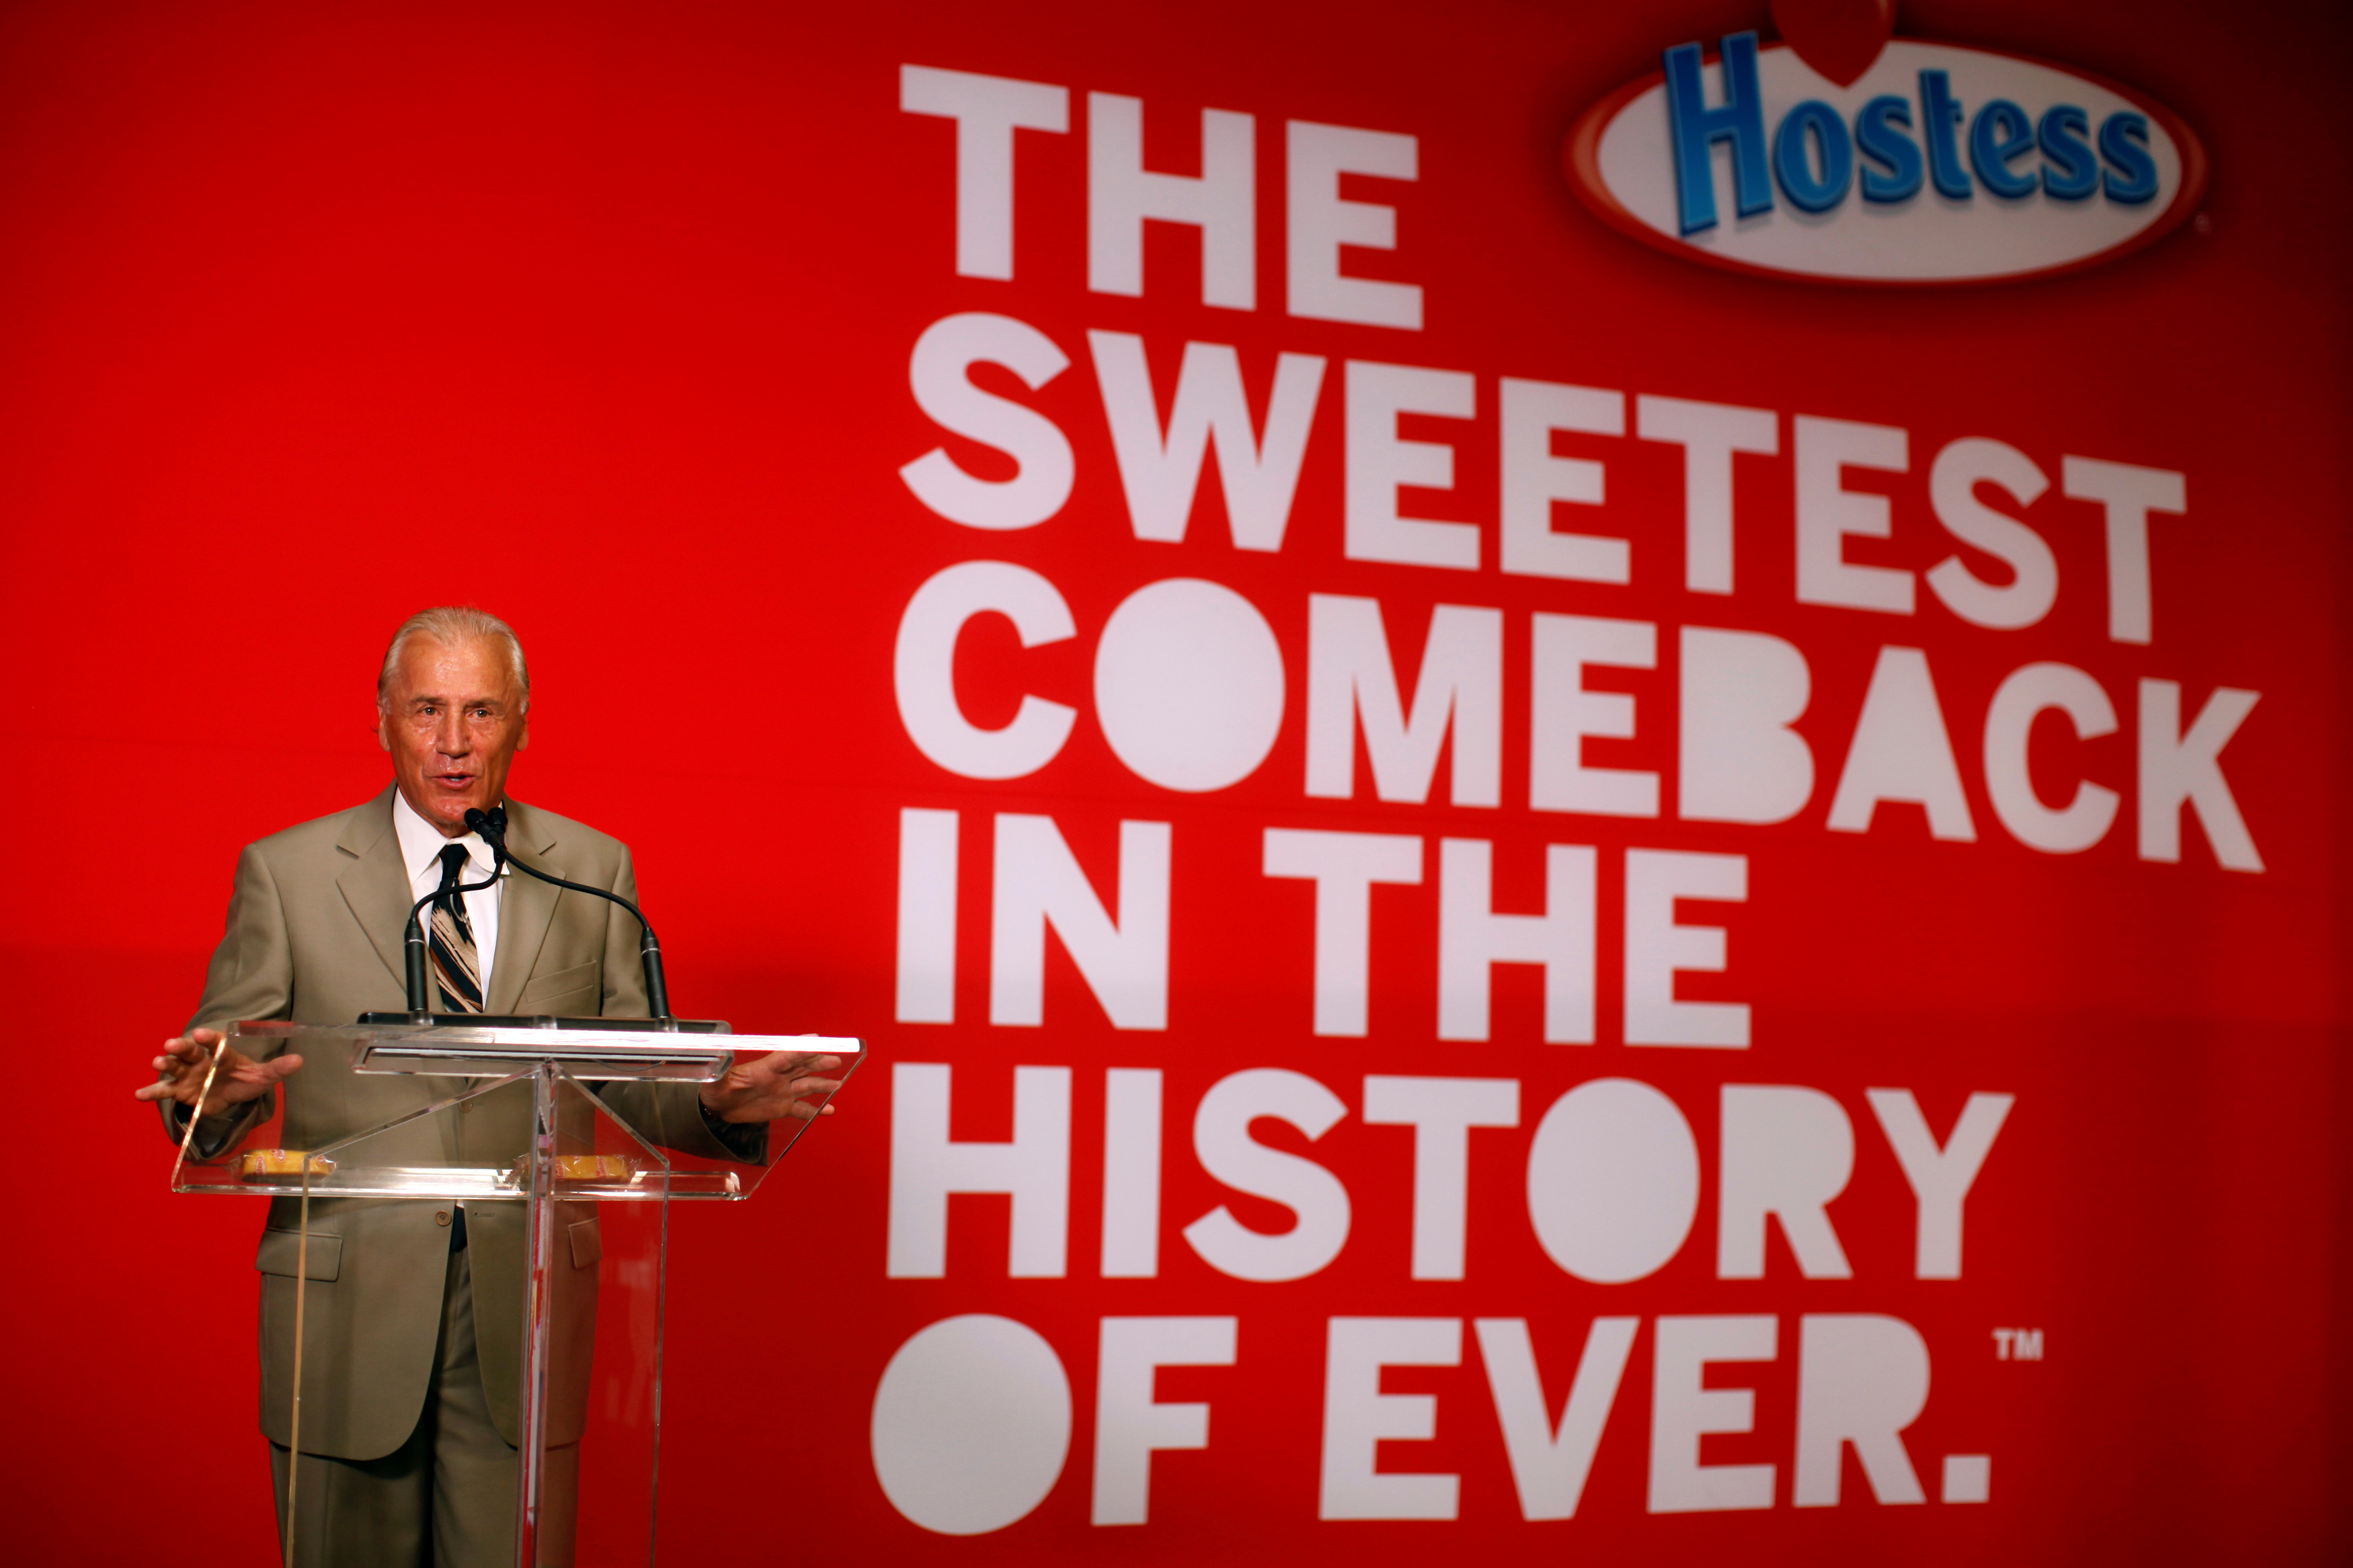 File photo: Dean Metropoulos speaks at a ceremony marking the return of